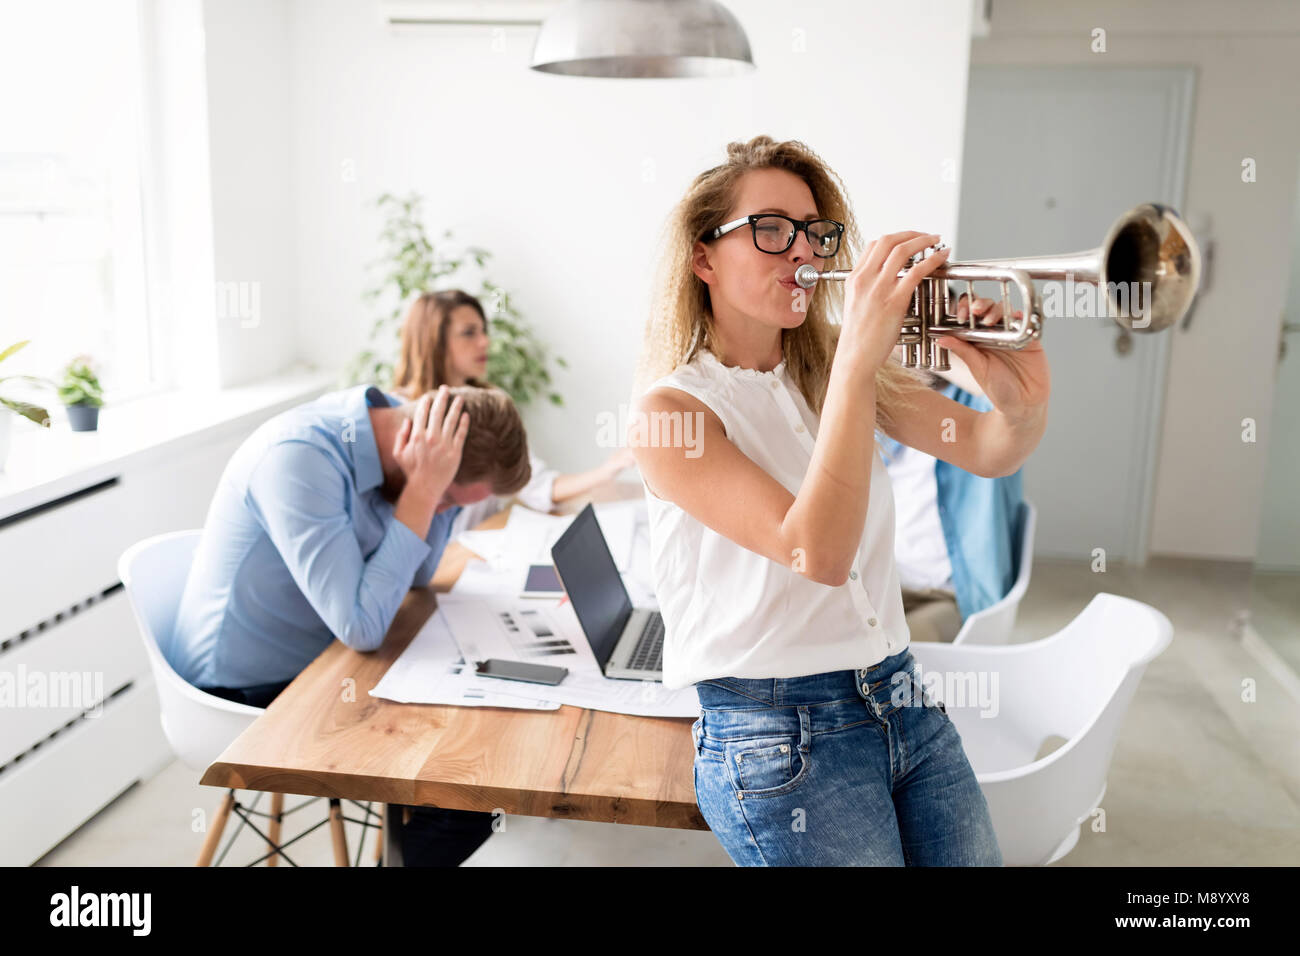 Business break rest and weekend concept with working hours ending - Stock Image